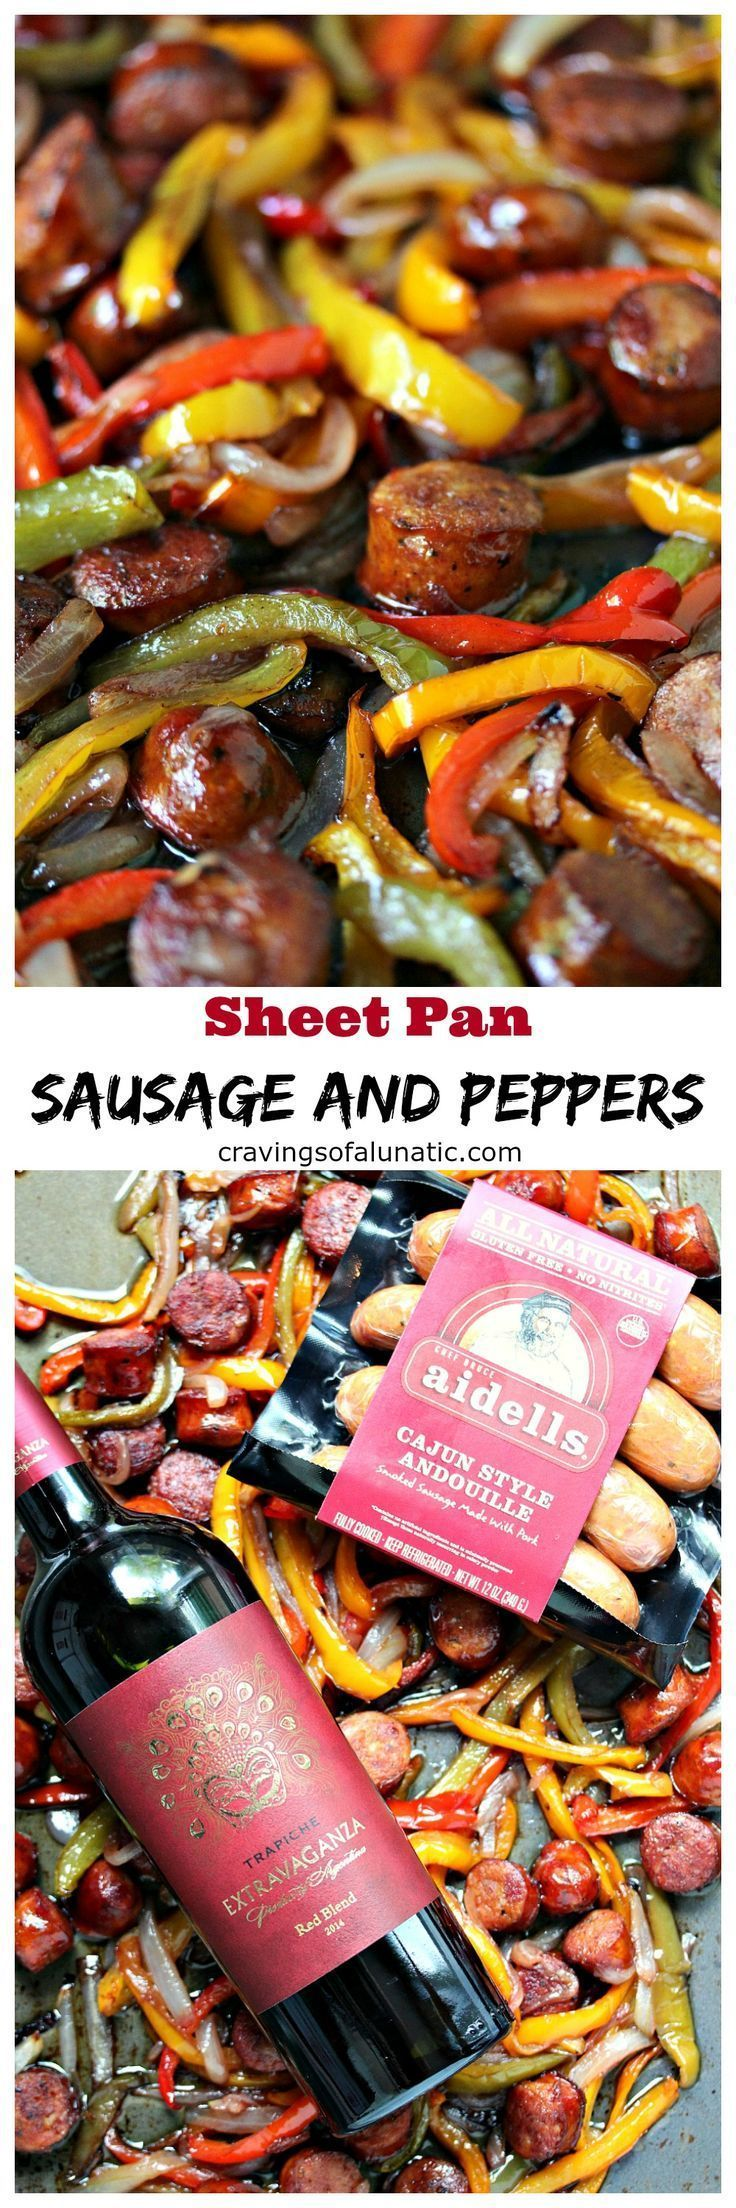 Sheet Pan Sausage and Peppers from cravingsofalunatic.com- This recipe is simple to make yet full of flavour. It's perfect to